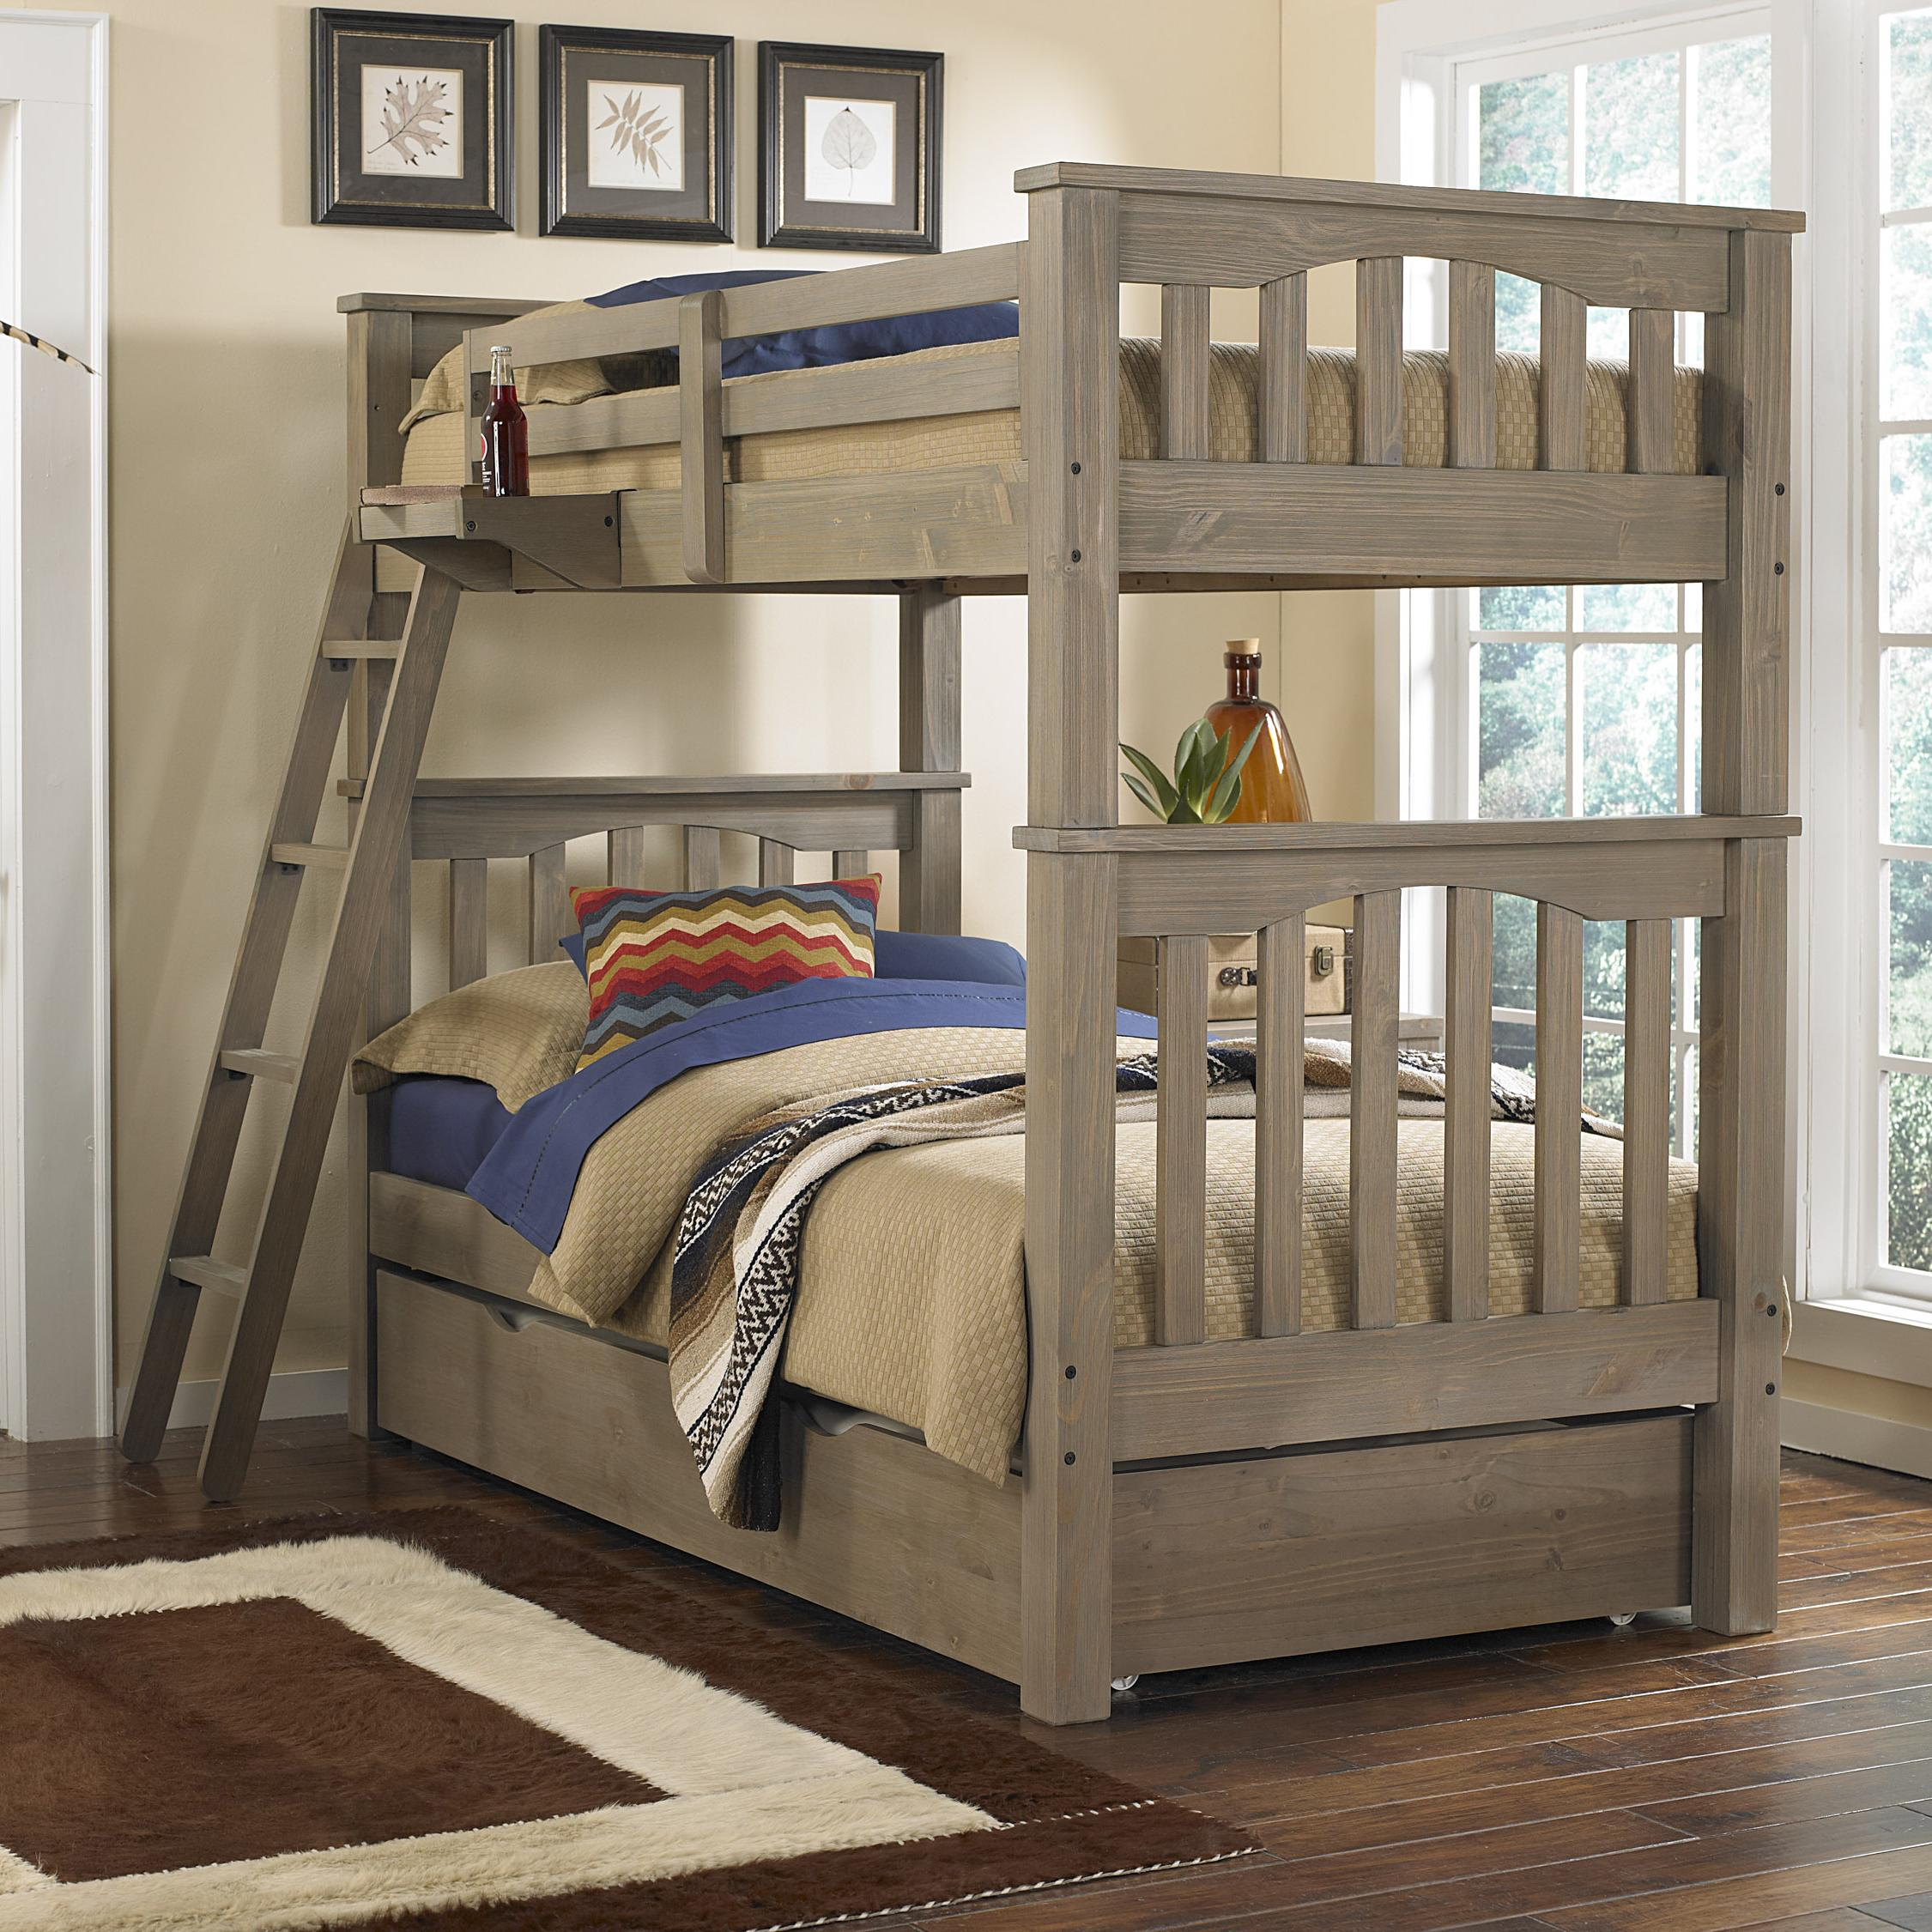 NE Kids Highlands Harper Twin Over Twin Bunk Bed With Trundle - Item Number: 10051+10560